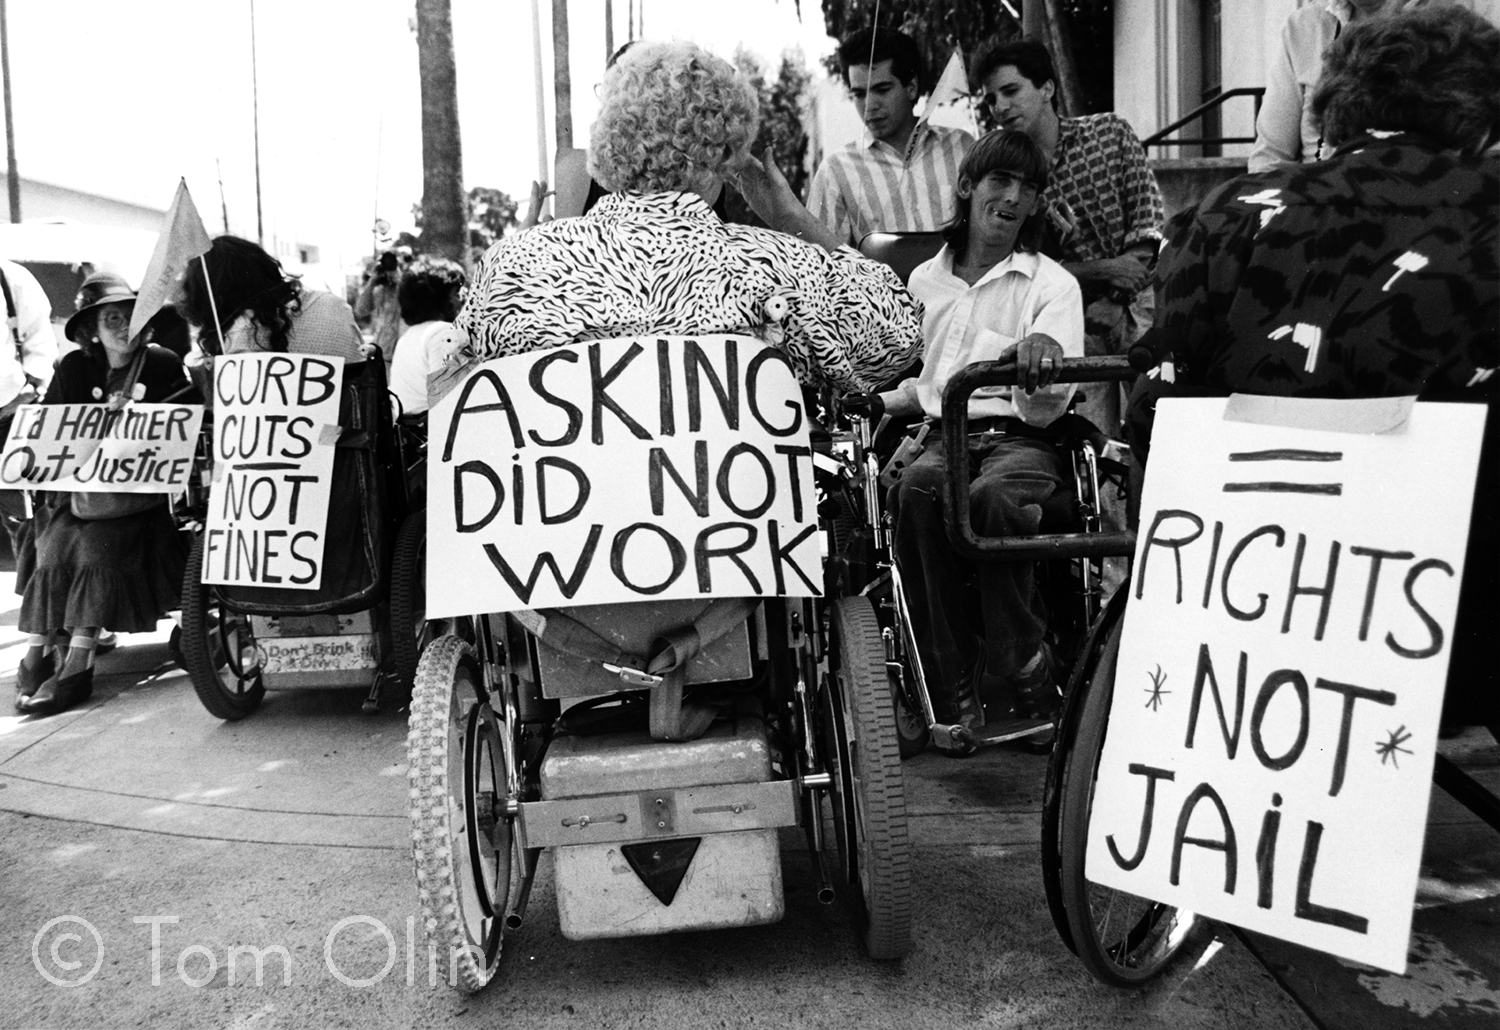 Black and white photograph of several disability activists in wheelchairs. They are holding signs that say I'd hammer out justice, curb cuts not fines, asking did not work, and rights not jail.